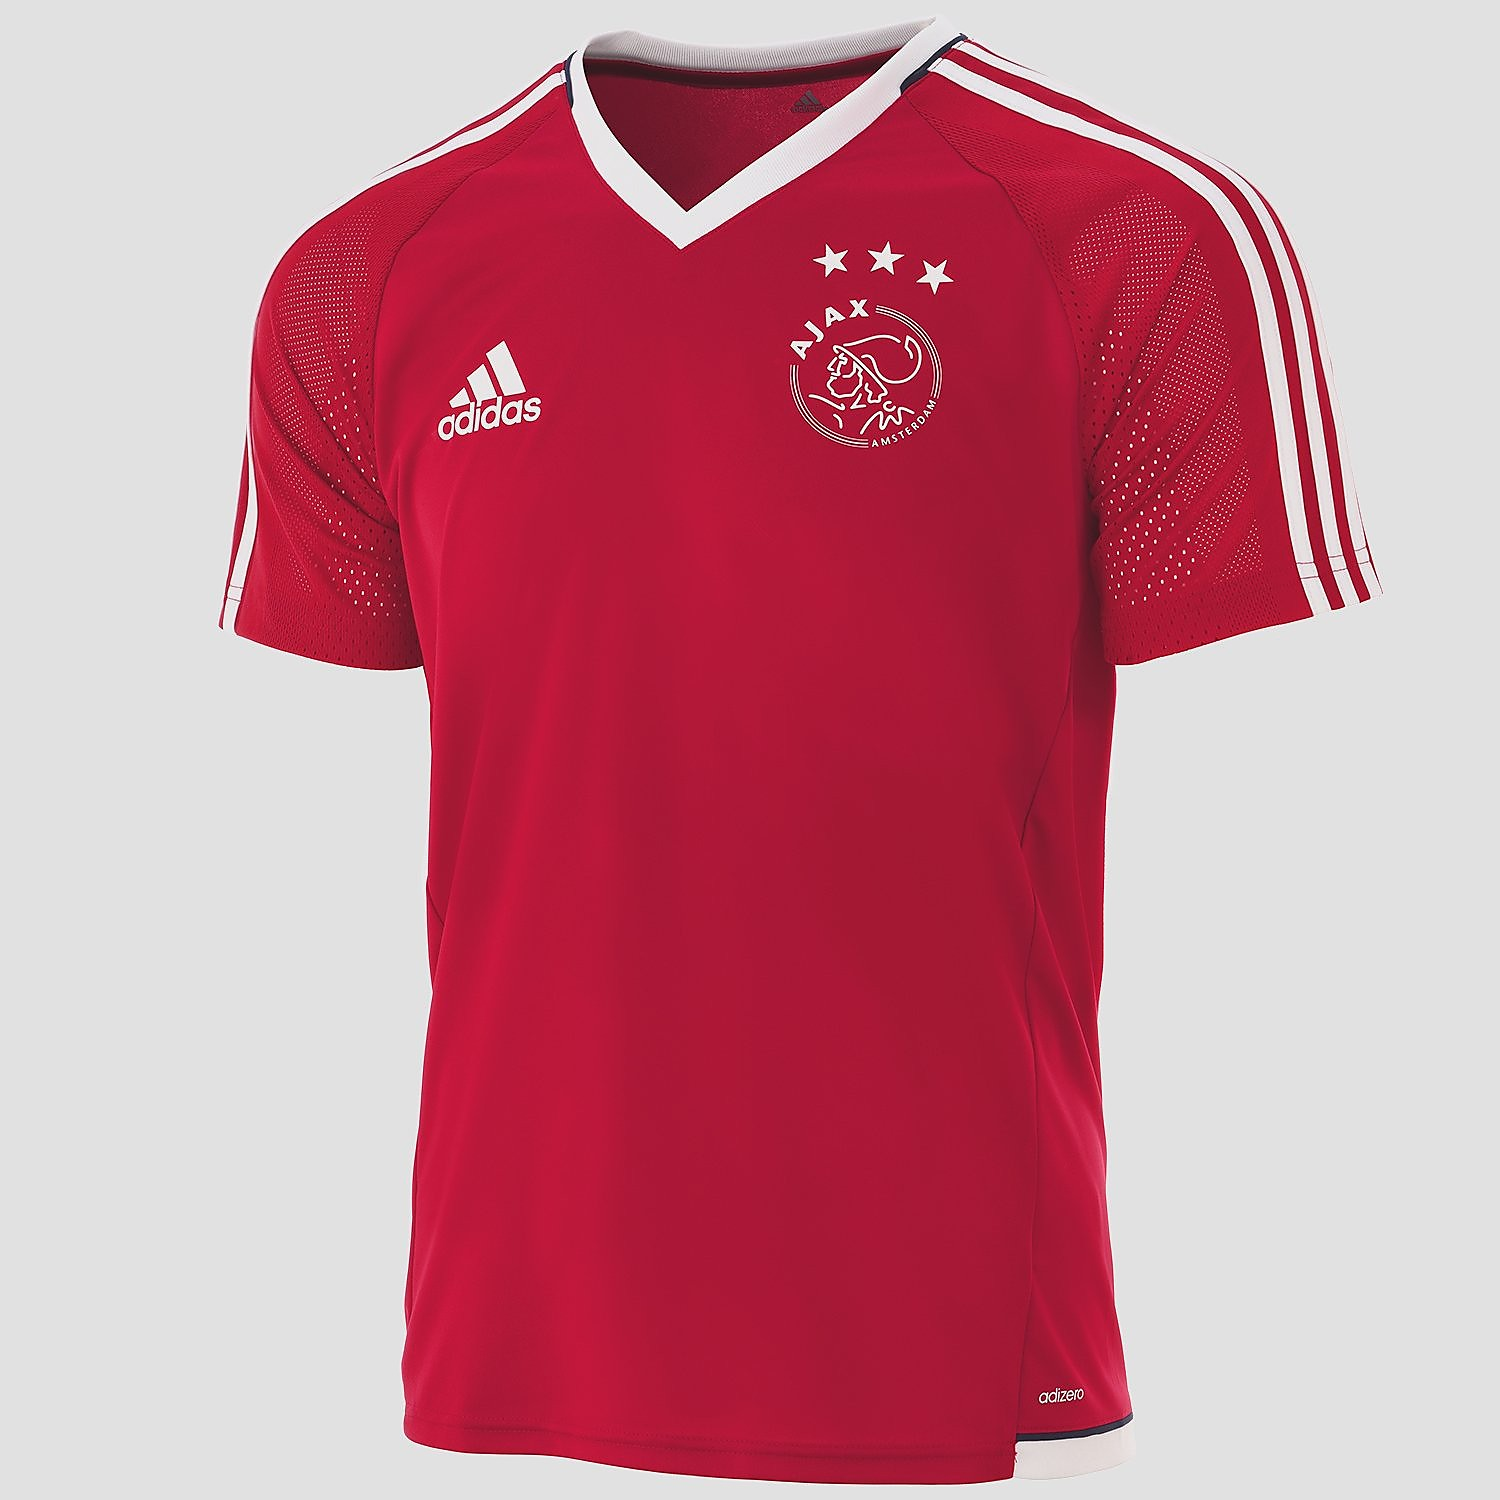 ADIDAS AJAX THUIS TRAININGSSHIRT 17/18 ROOD/WIT HEREN